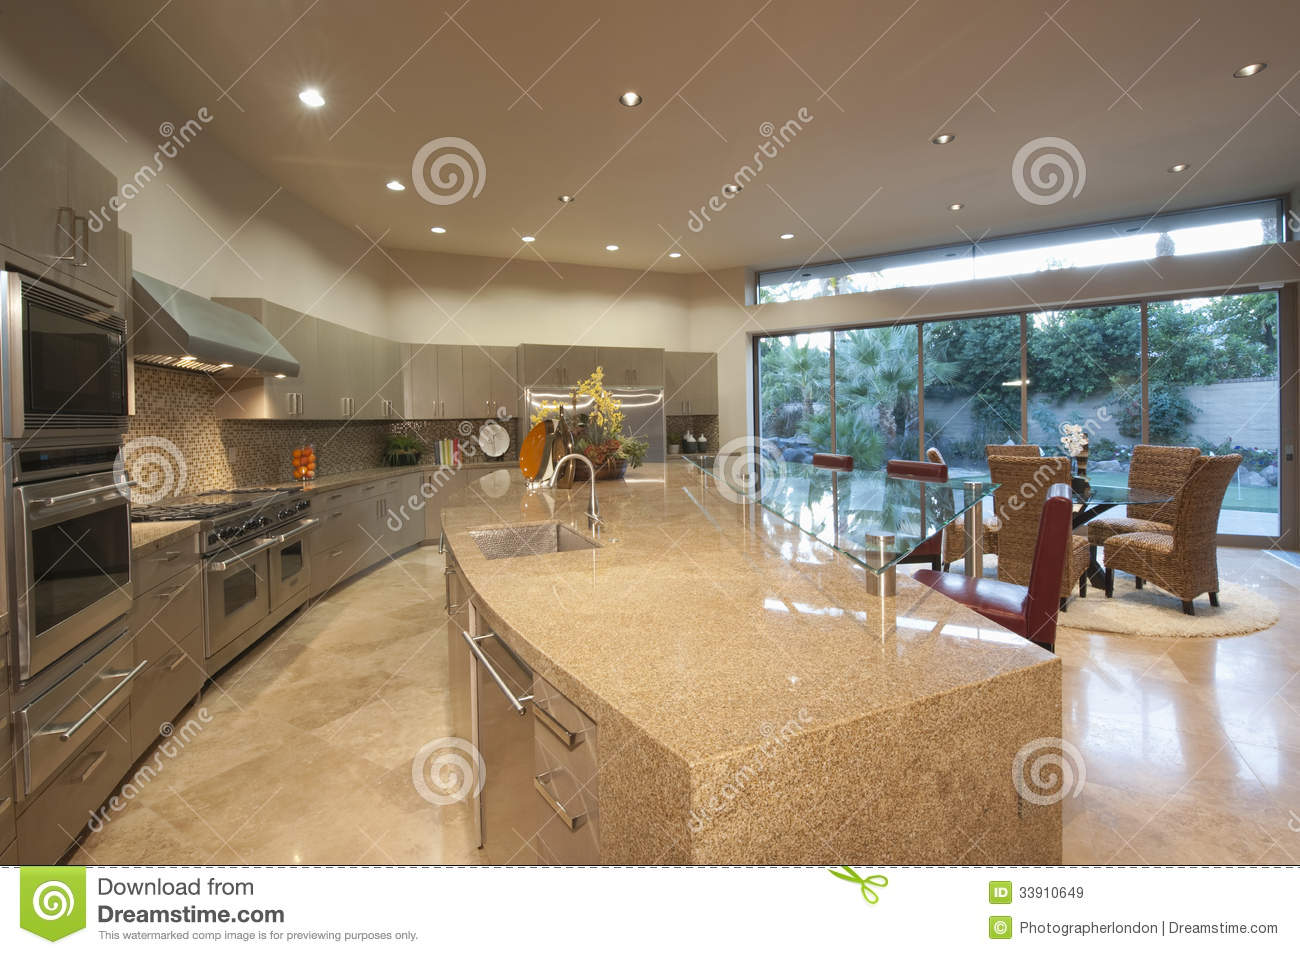 Open Plan Kitchen With Dining Area Royalty Free Stock